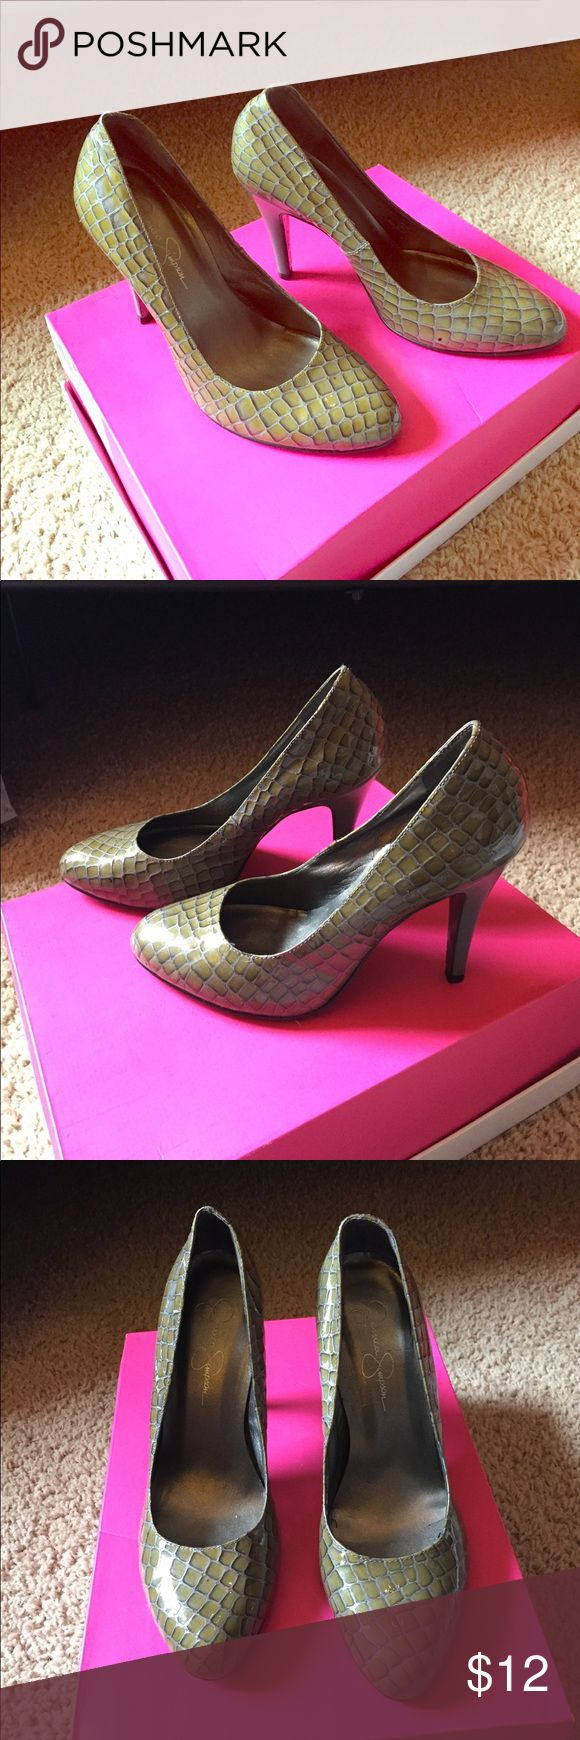 Cute Pumps These cute green and gray pumps are in great condition. The shoe is green snake skin like pattern and the pump is a solid light gray. Very unique! Jessica Simpson Shoes Heels